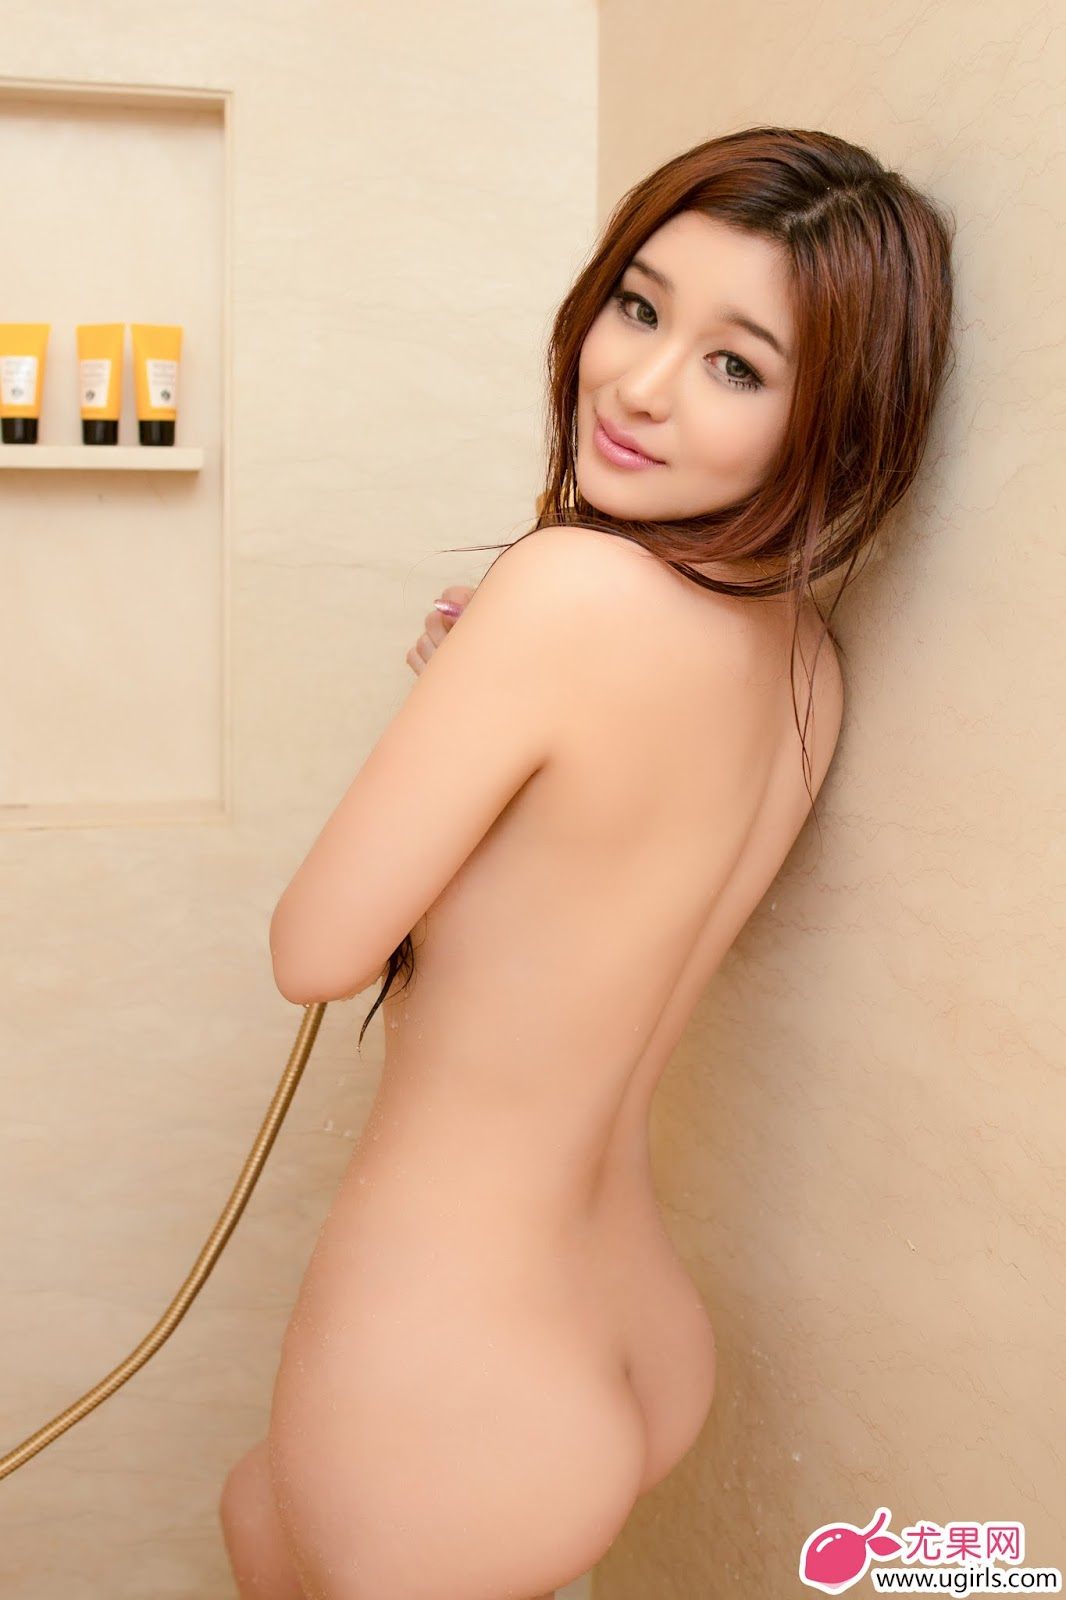 EZ0A0826 - Ugirls No.016 Model 纯小希 (Chun Xiao Xi)